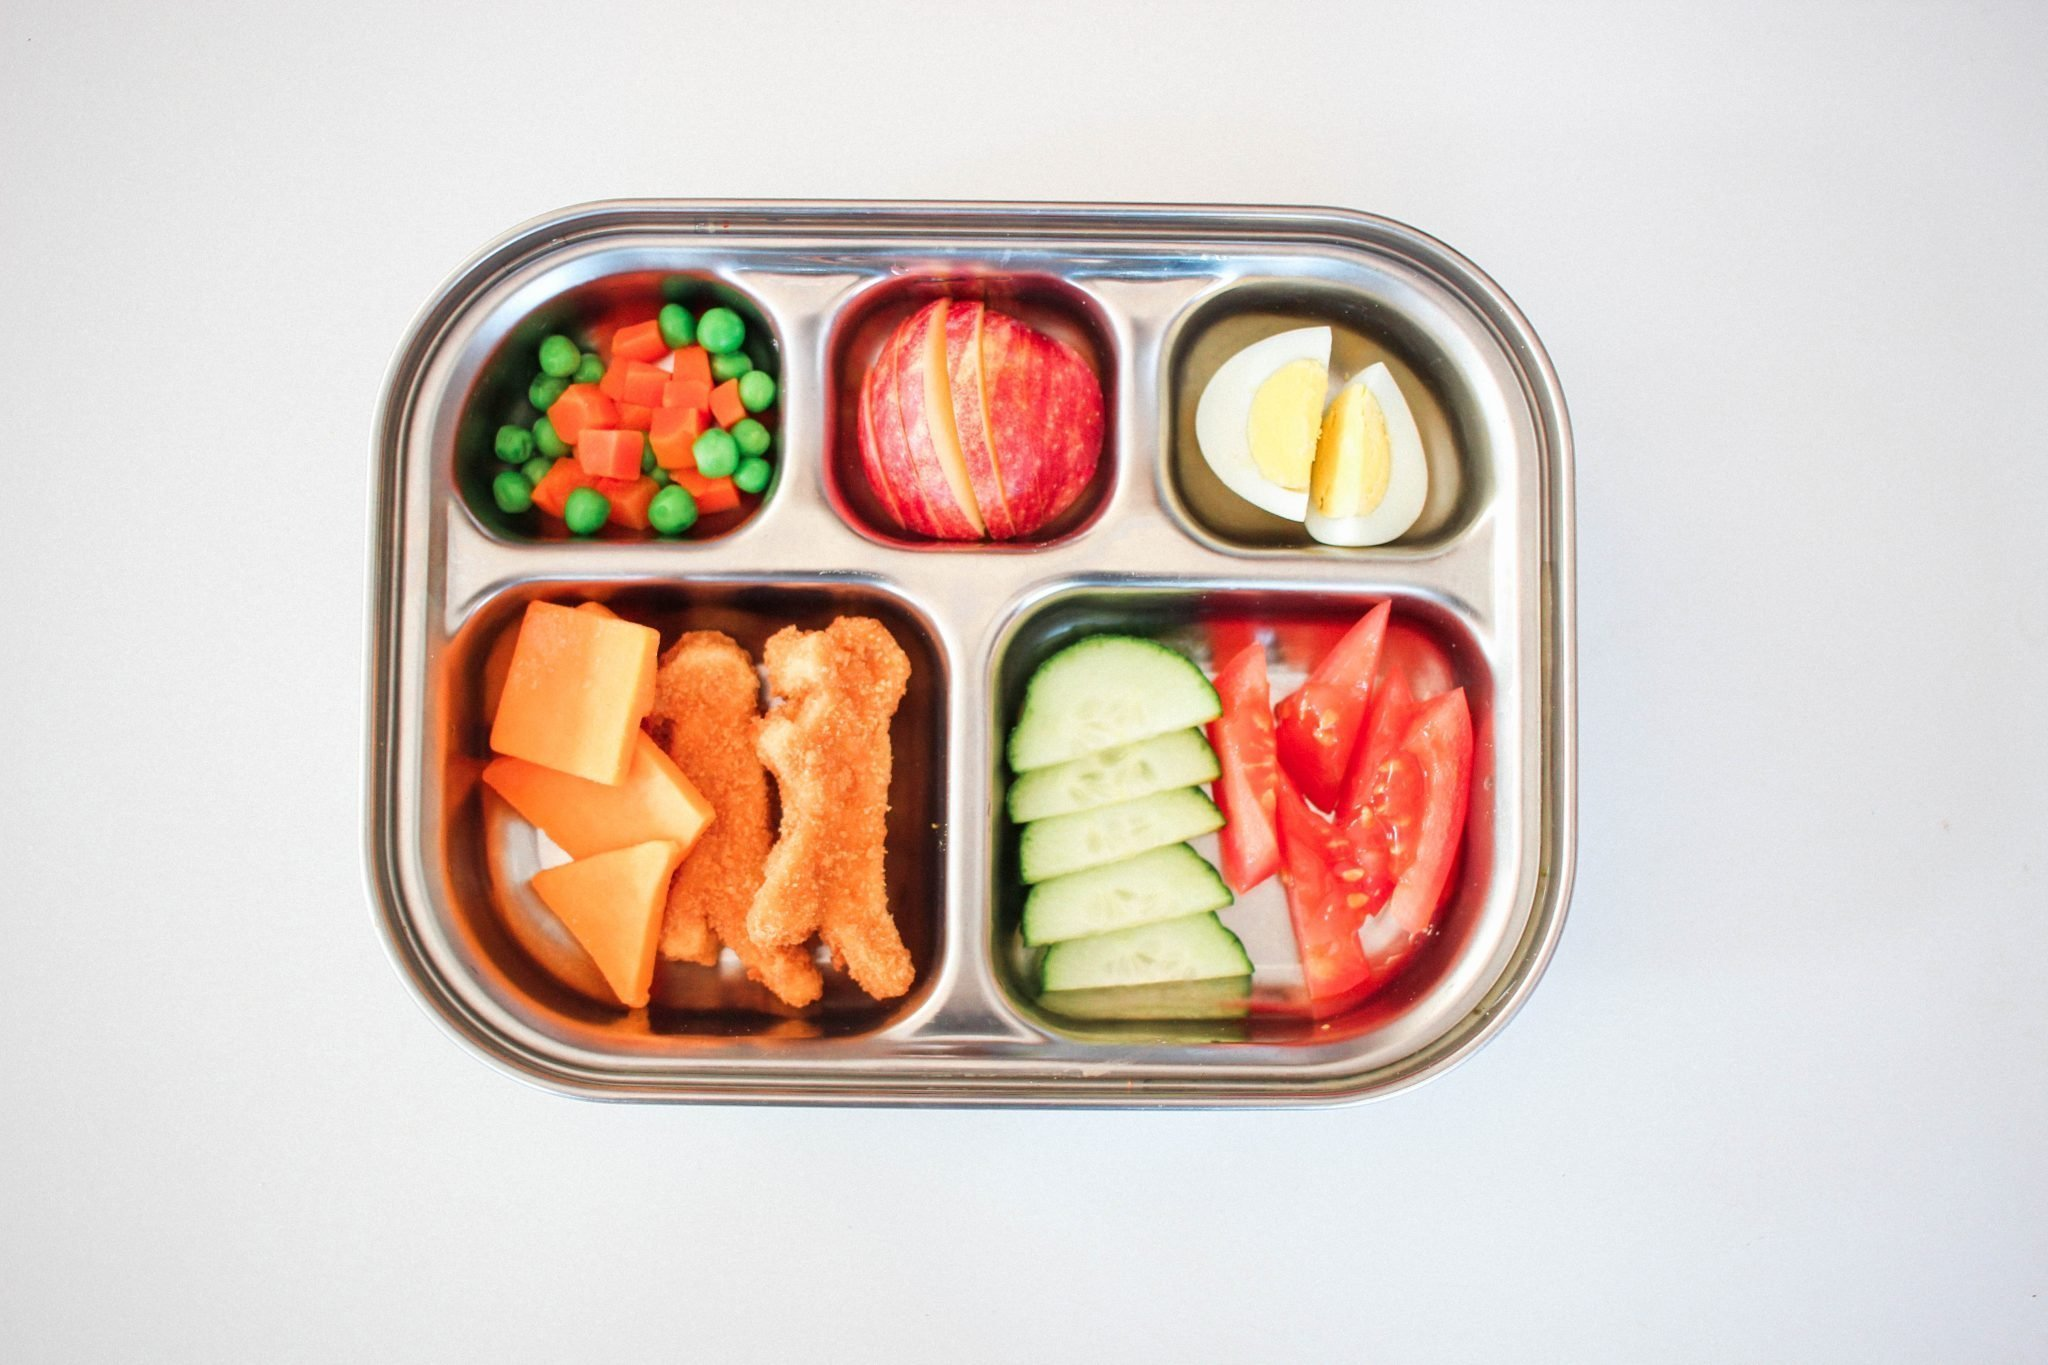 Lunch In A Box Bento Box Meals Easy Simple School Lunch Ideas Simply Every